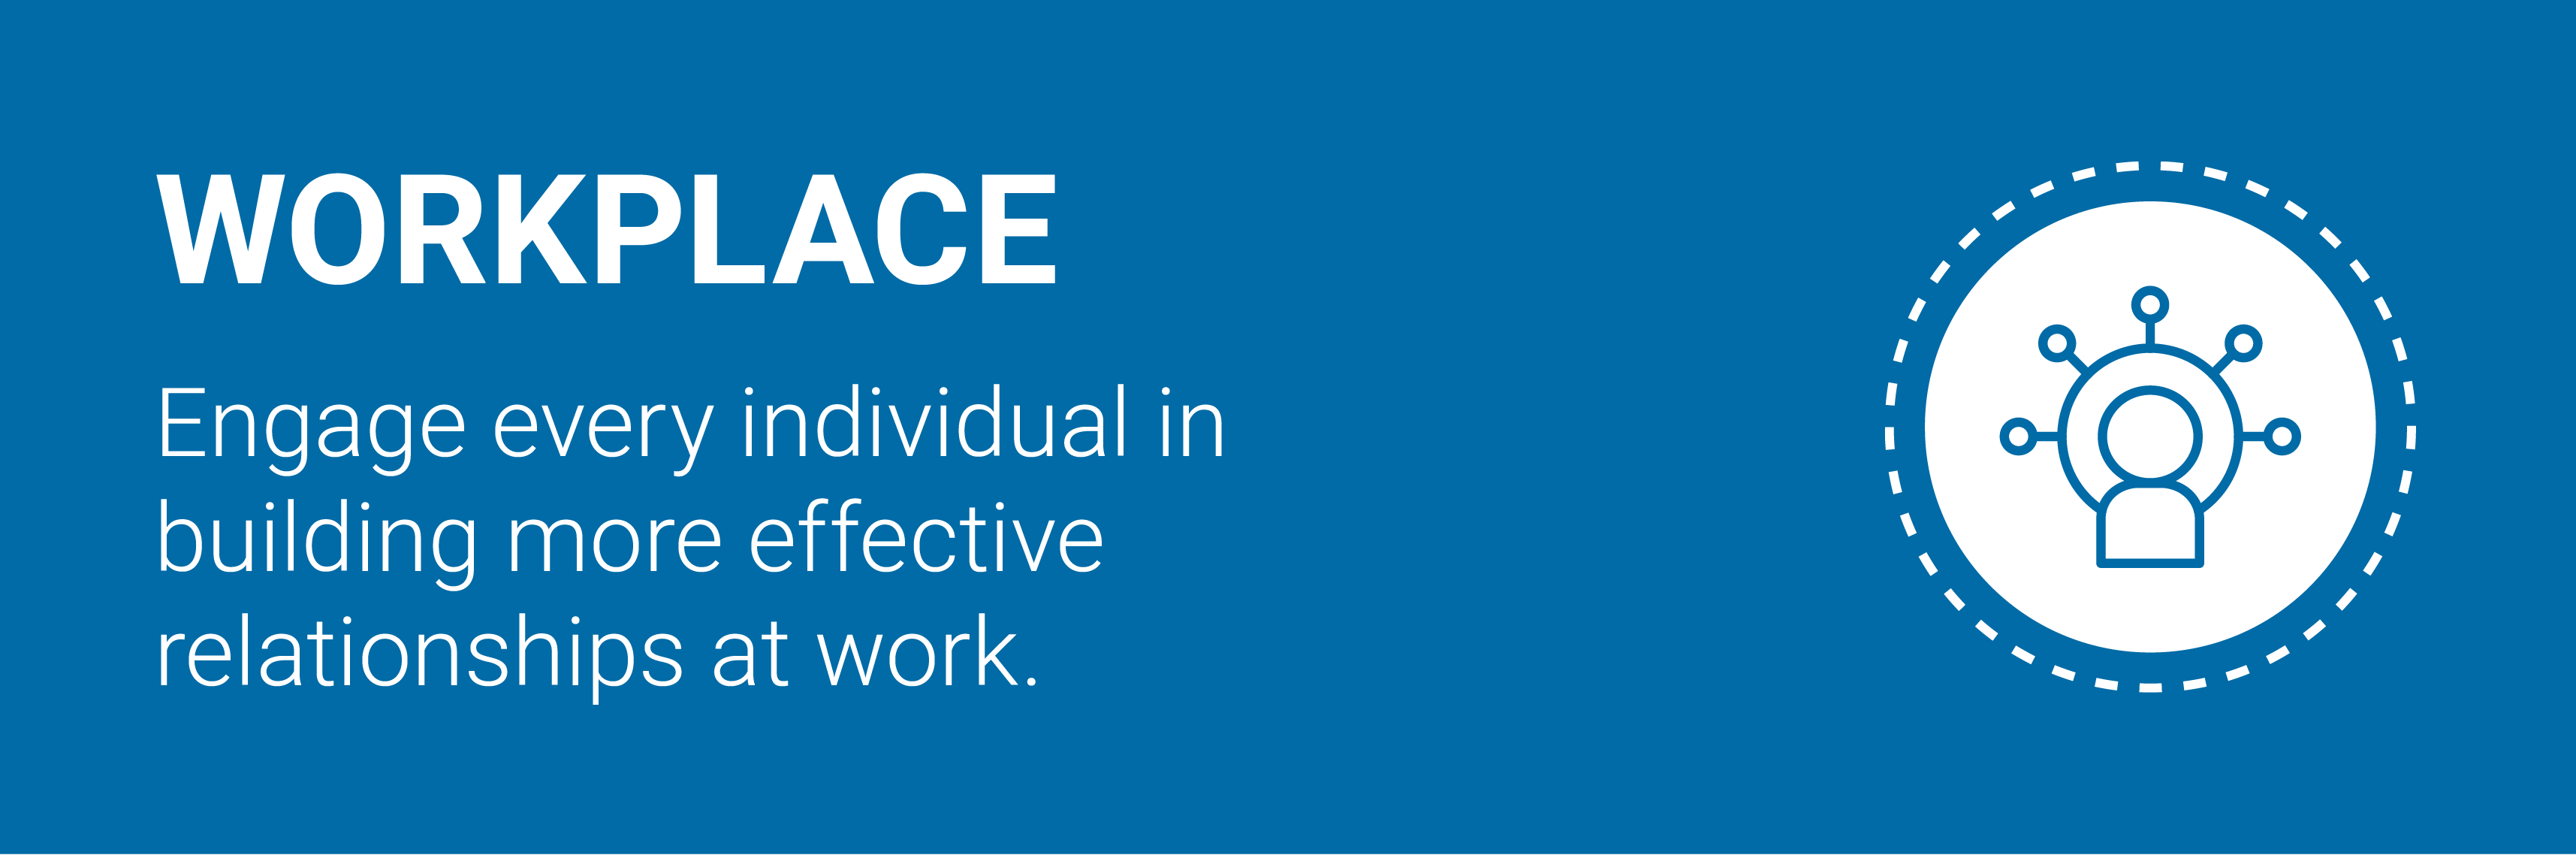 Everything DiSC Workplace Program.